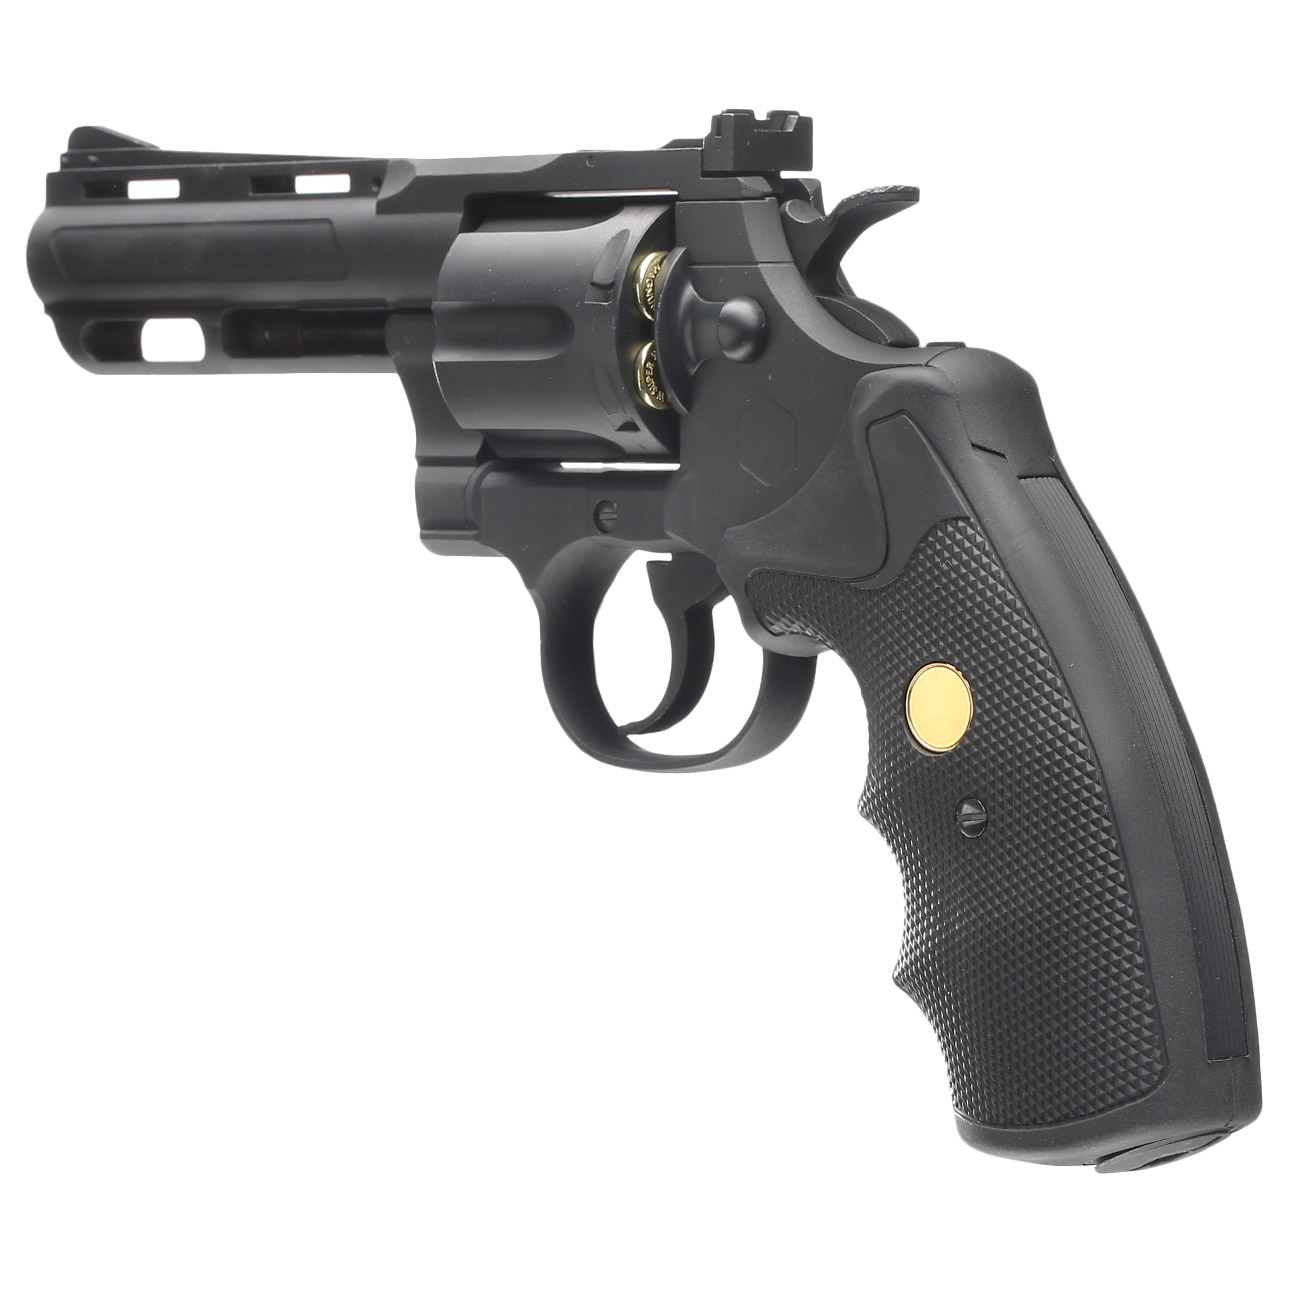 King Arms .357 Magnum Custom I 4 Zoll Revolver Vollmetall CO2 6mm BB schwarz 3